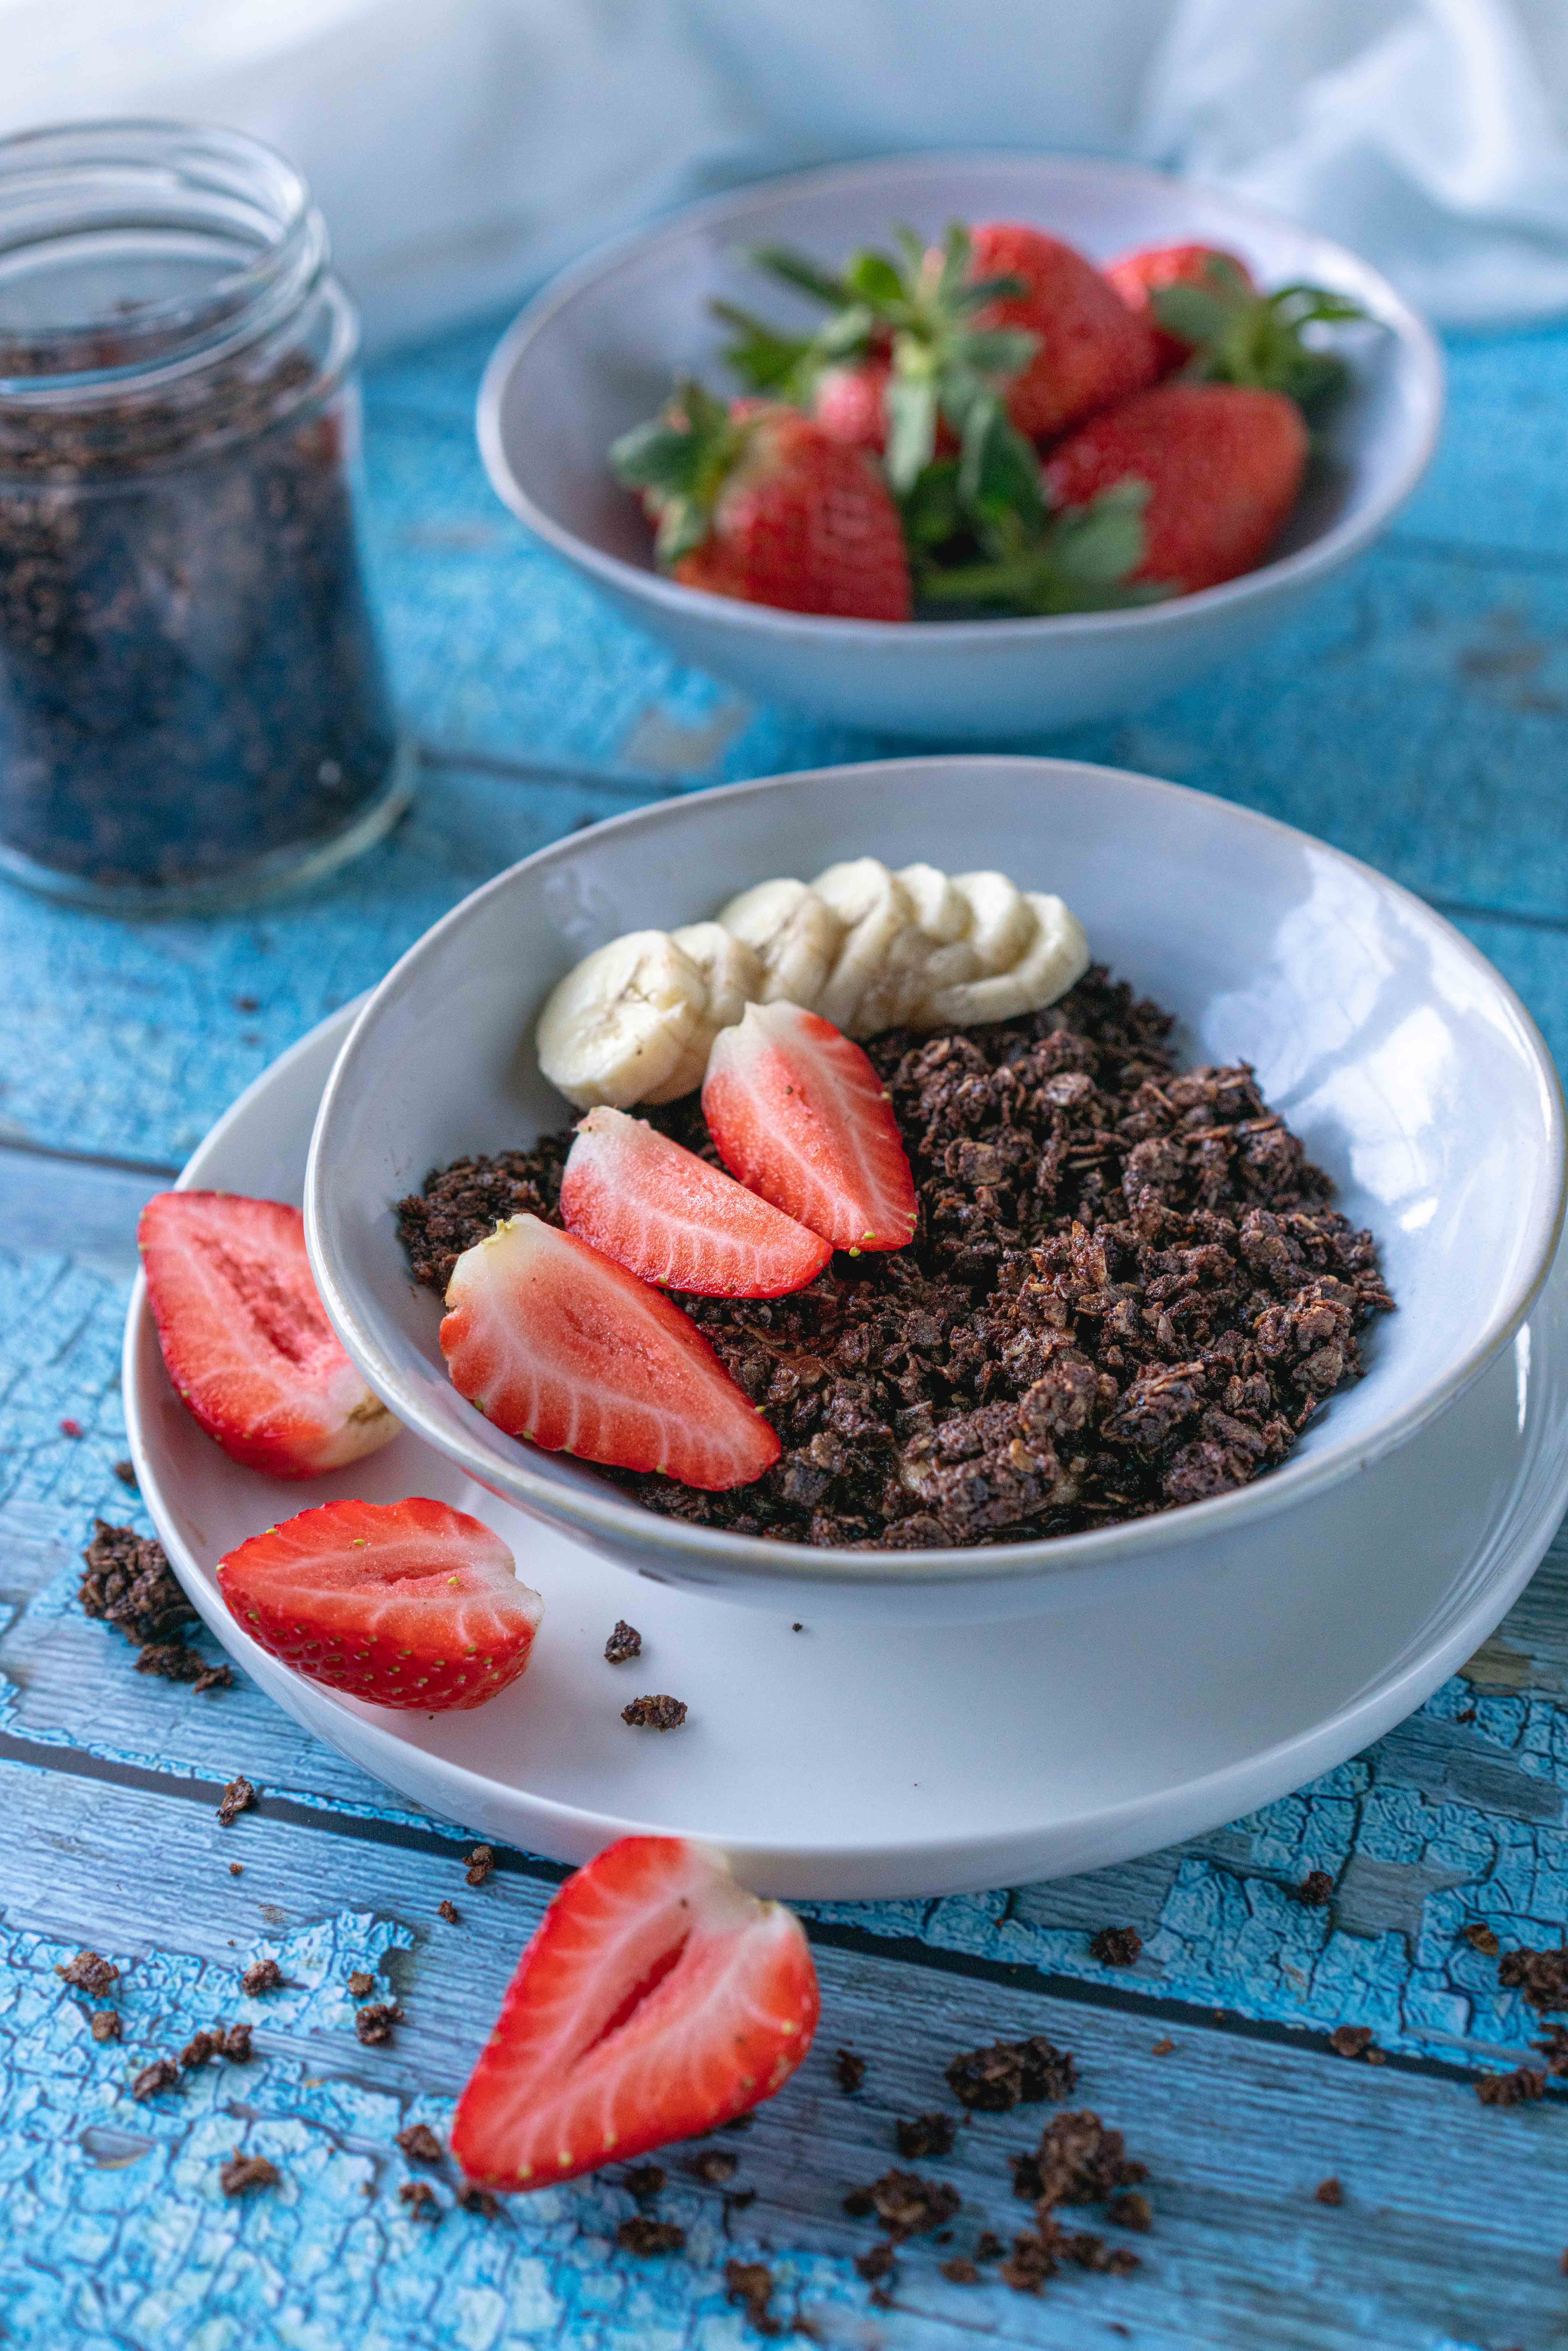 This Healthy Chocolate Granola recipe is healthy, super-easy to make with only 4 ingredients, and oh-so crunchy, chocolatey and delicious.